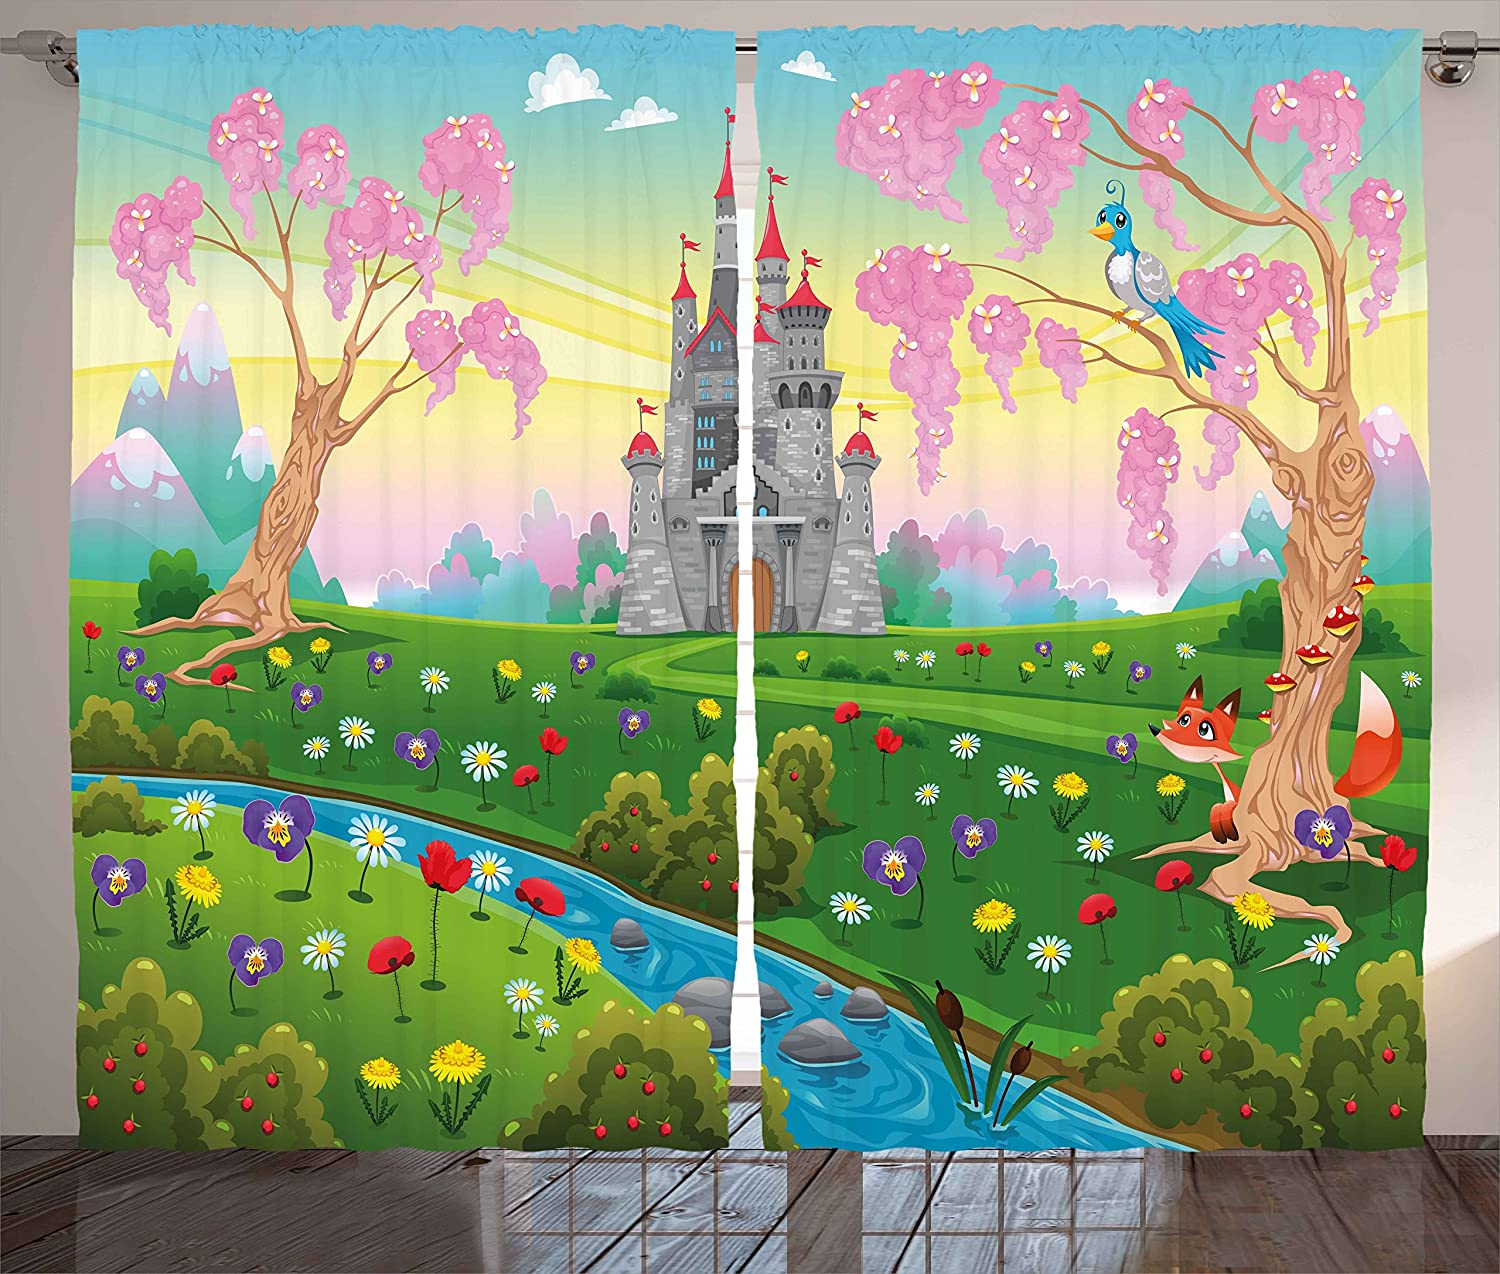 "Ambesonne Cartoon Curtains, Fairy Tale Castle Scenery in Floral Garden Princess Kids Girls Fantasy Picture, Living Room Bedroom Window Drapes 2 Panel Set, 108"" X 84"", Pink Blue"